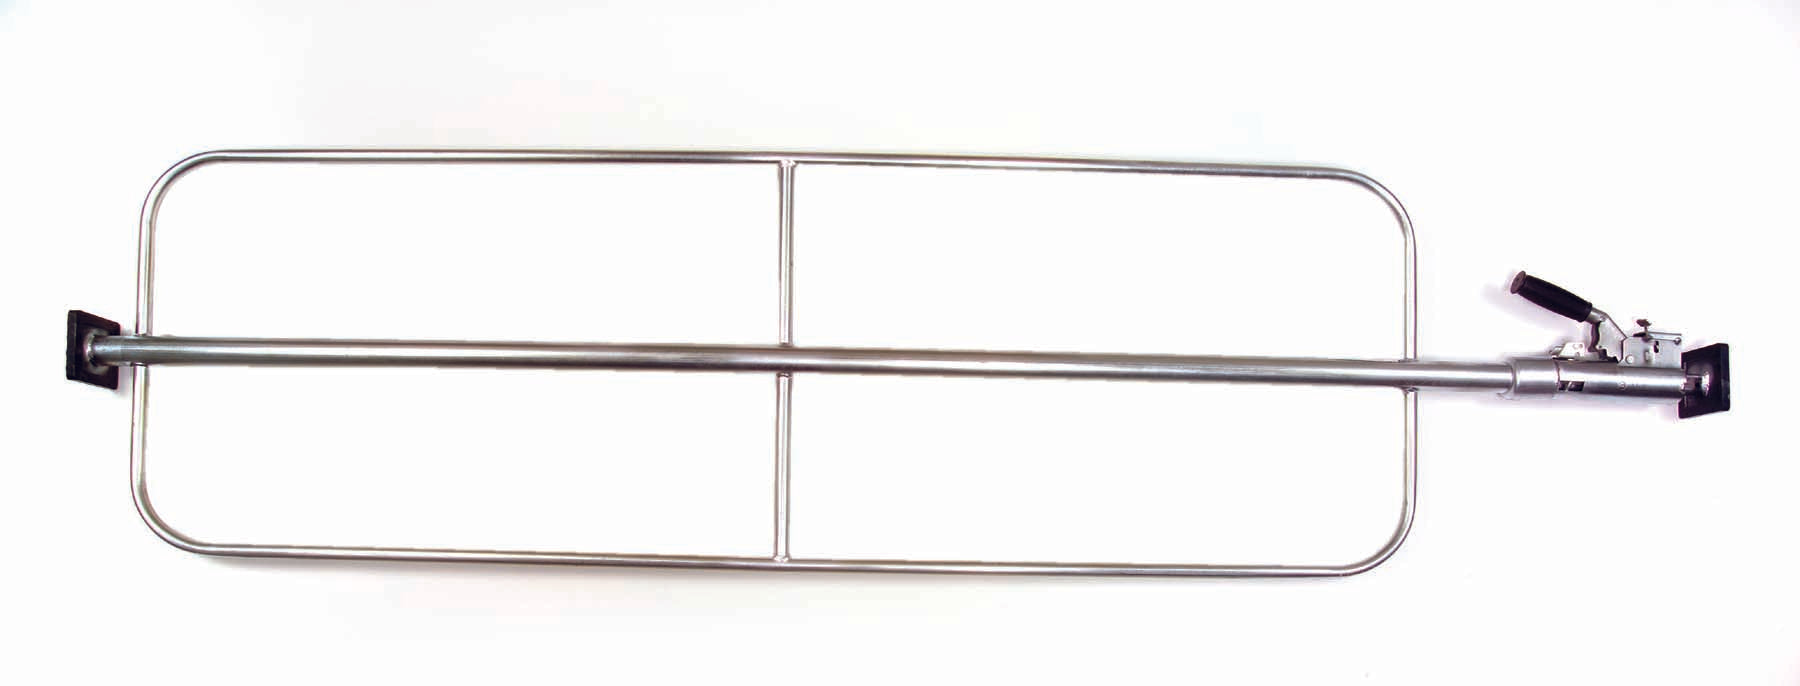 "ECONOMY BAR WITH WELD ON HOOPS - ADJUSTABLE LENGTH 86"" TO 109"""